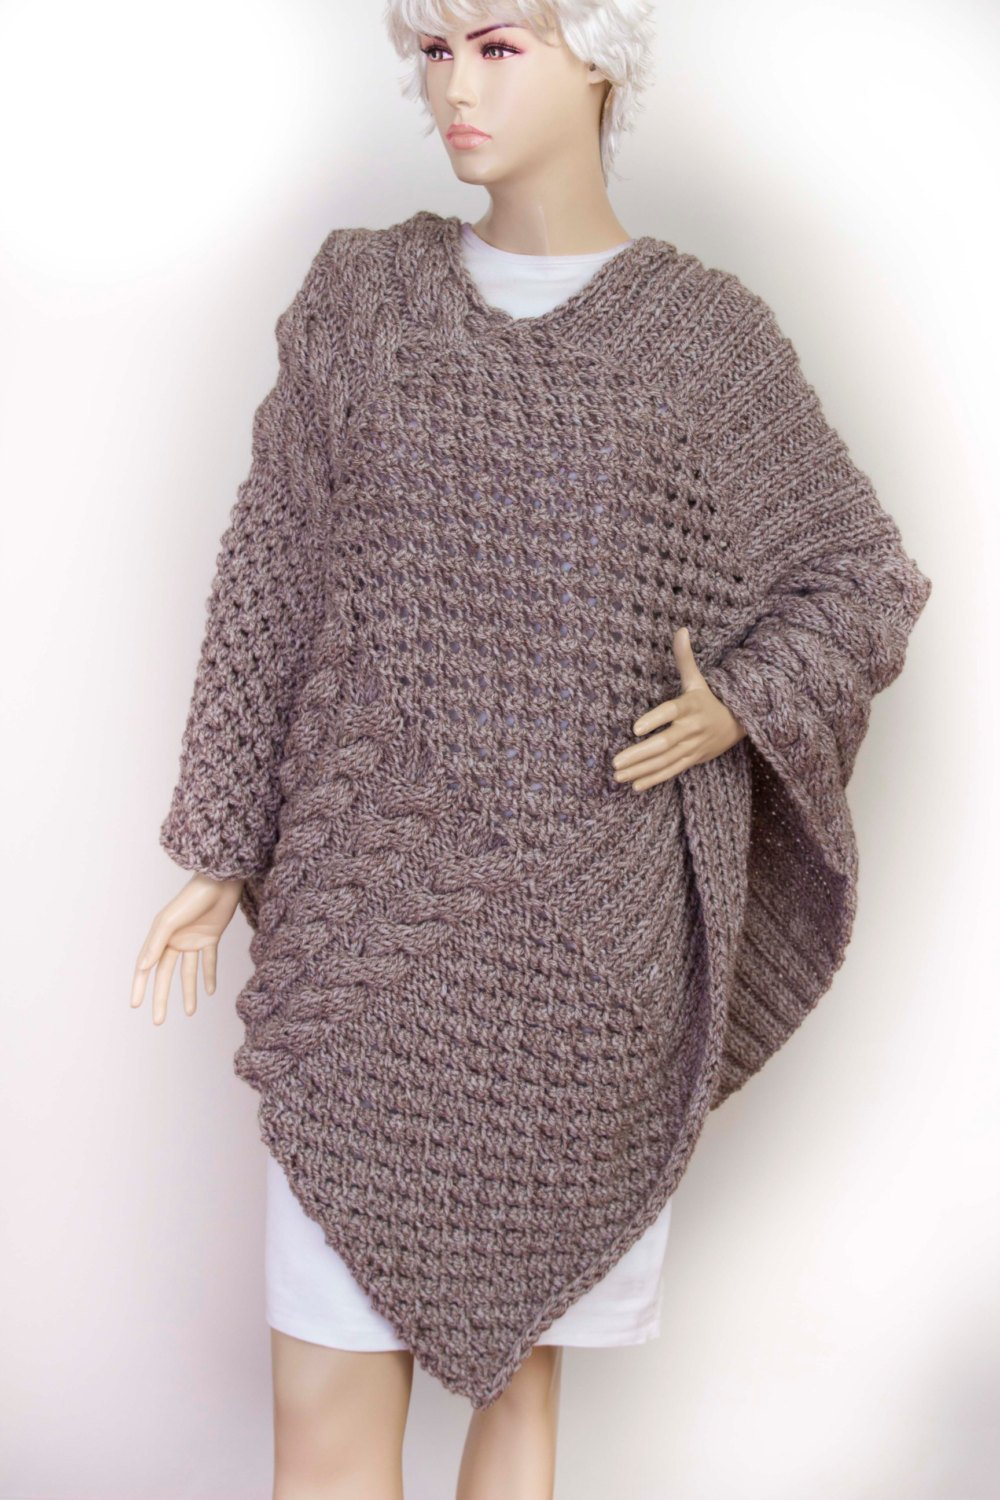 Amazon com: Knitted poncho, Cabled poncho, Chunky knit